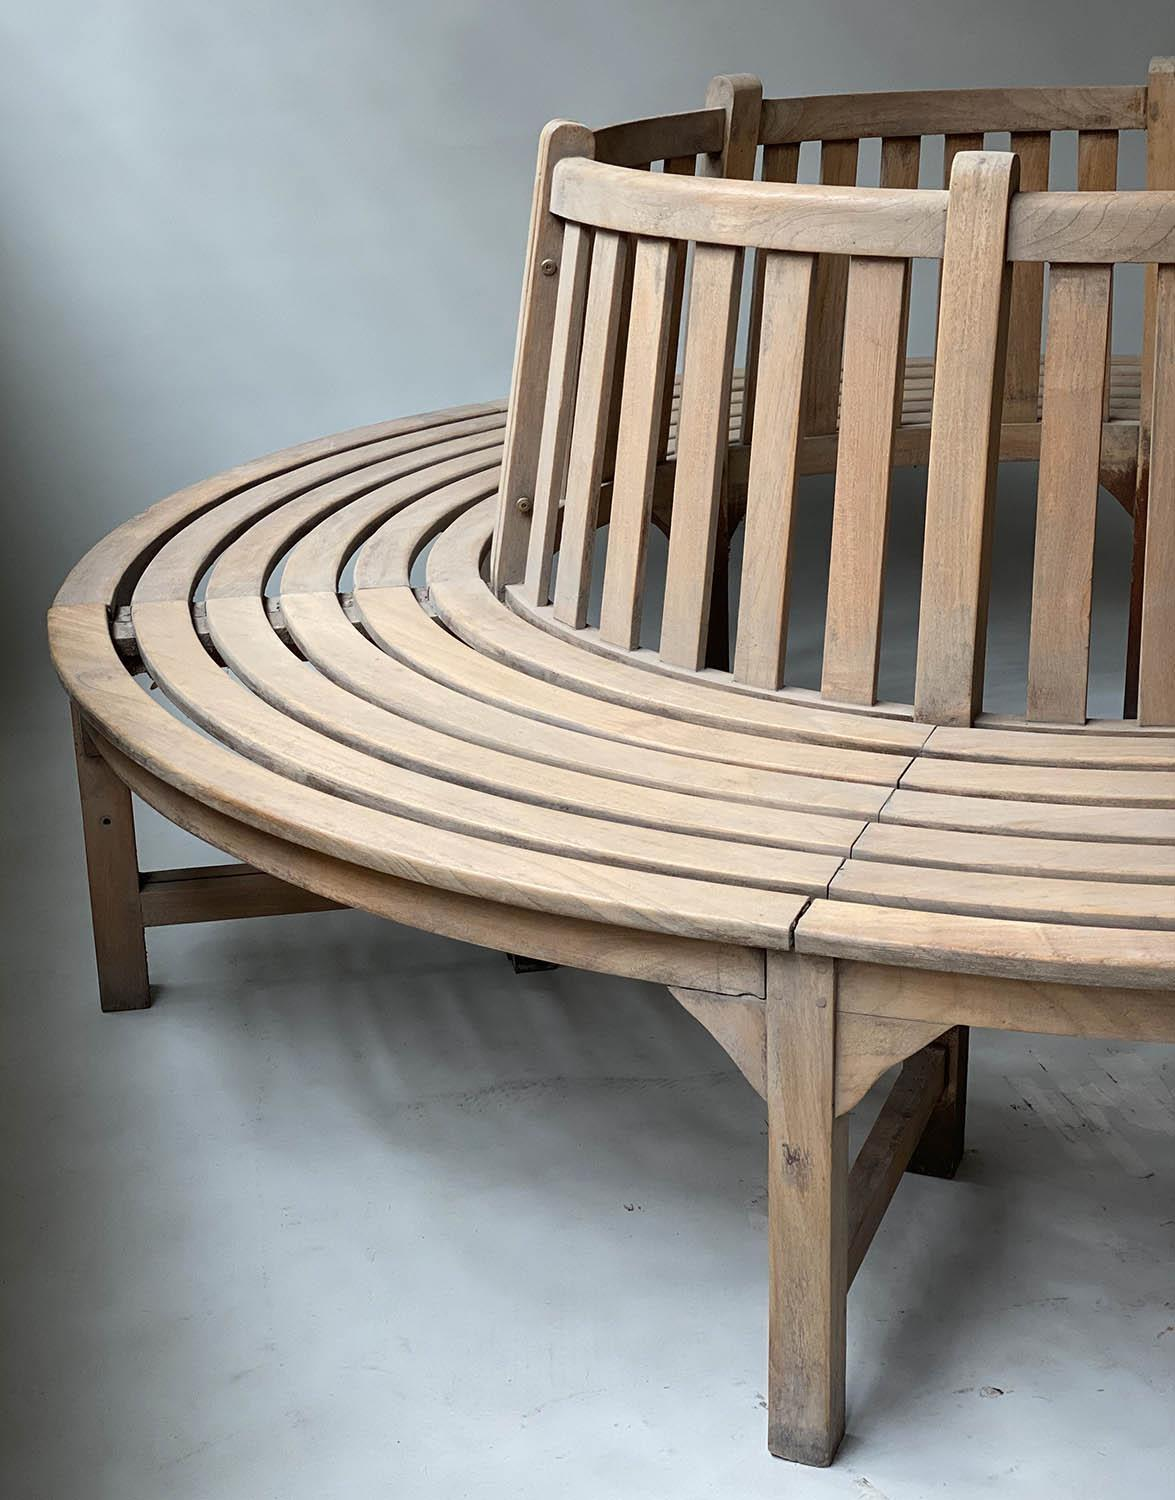 TREE BENCH, weathered teak and slatted in two sections of concentric slats and raised back rest, - Image 3 of 7